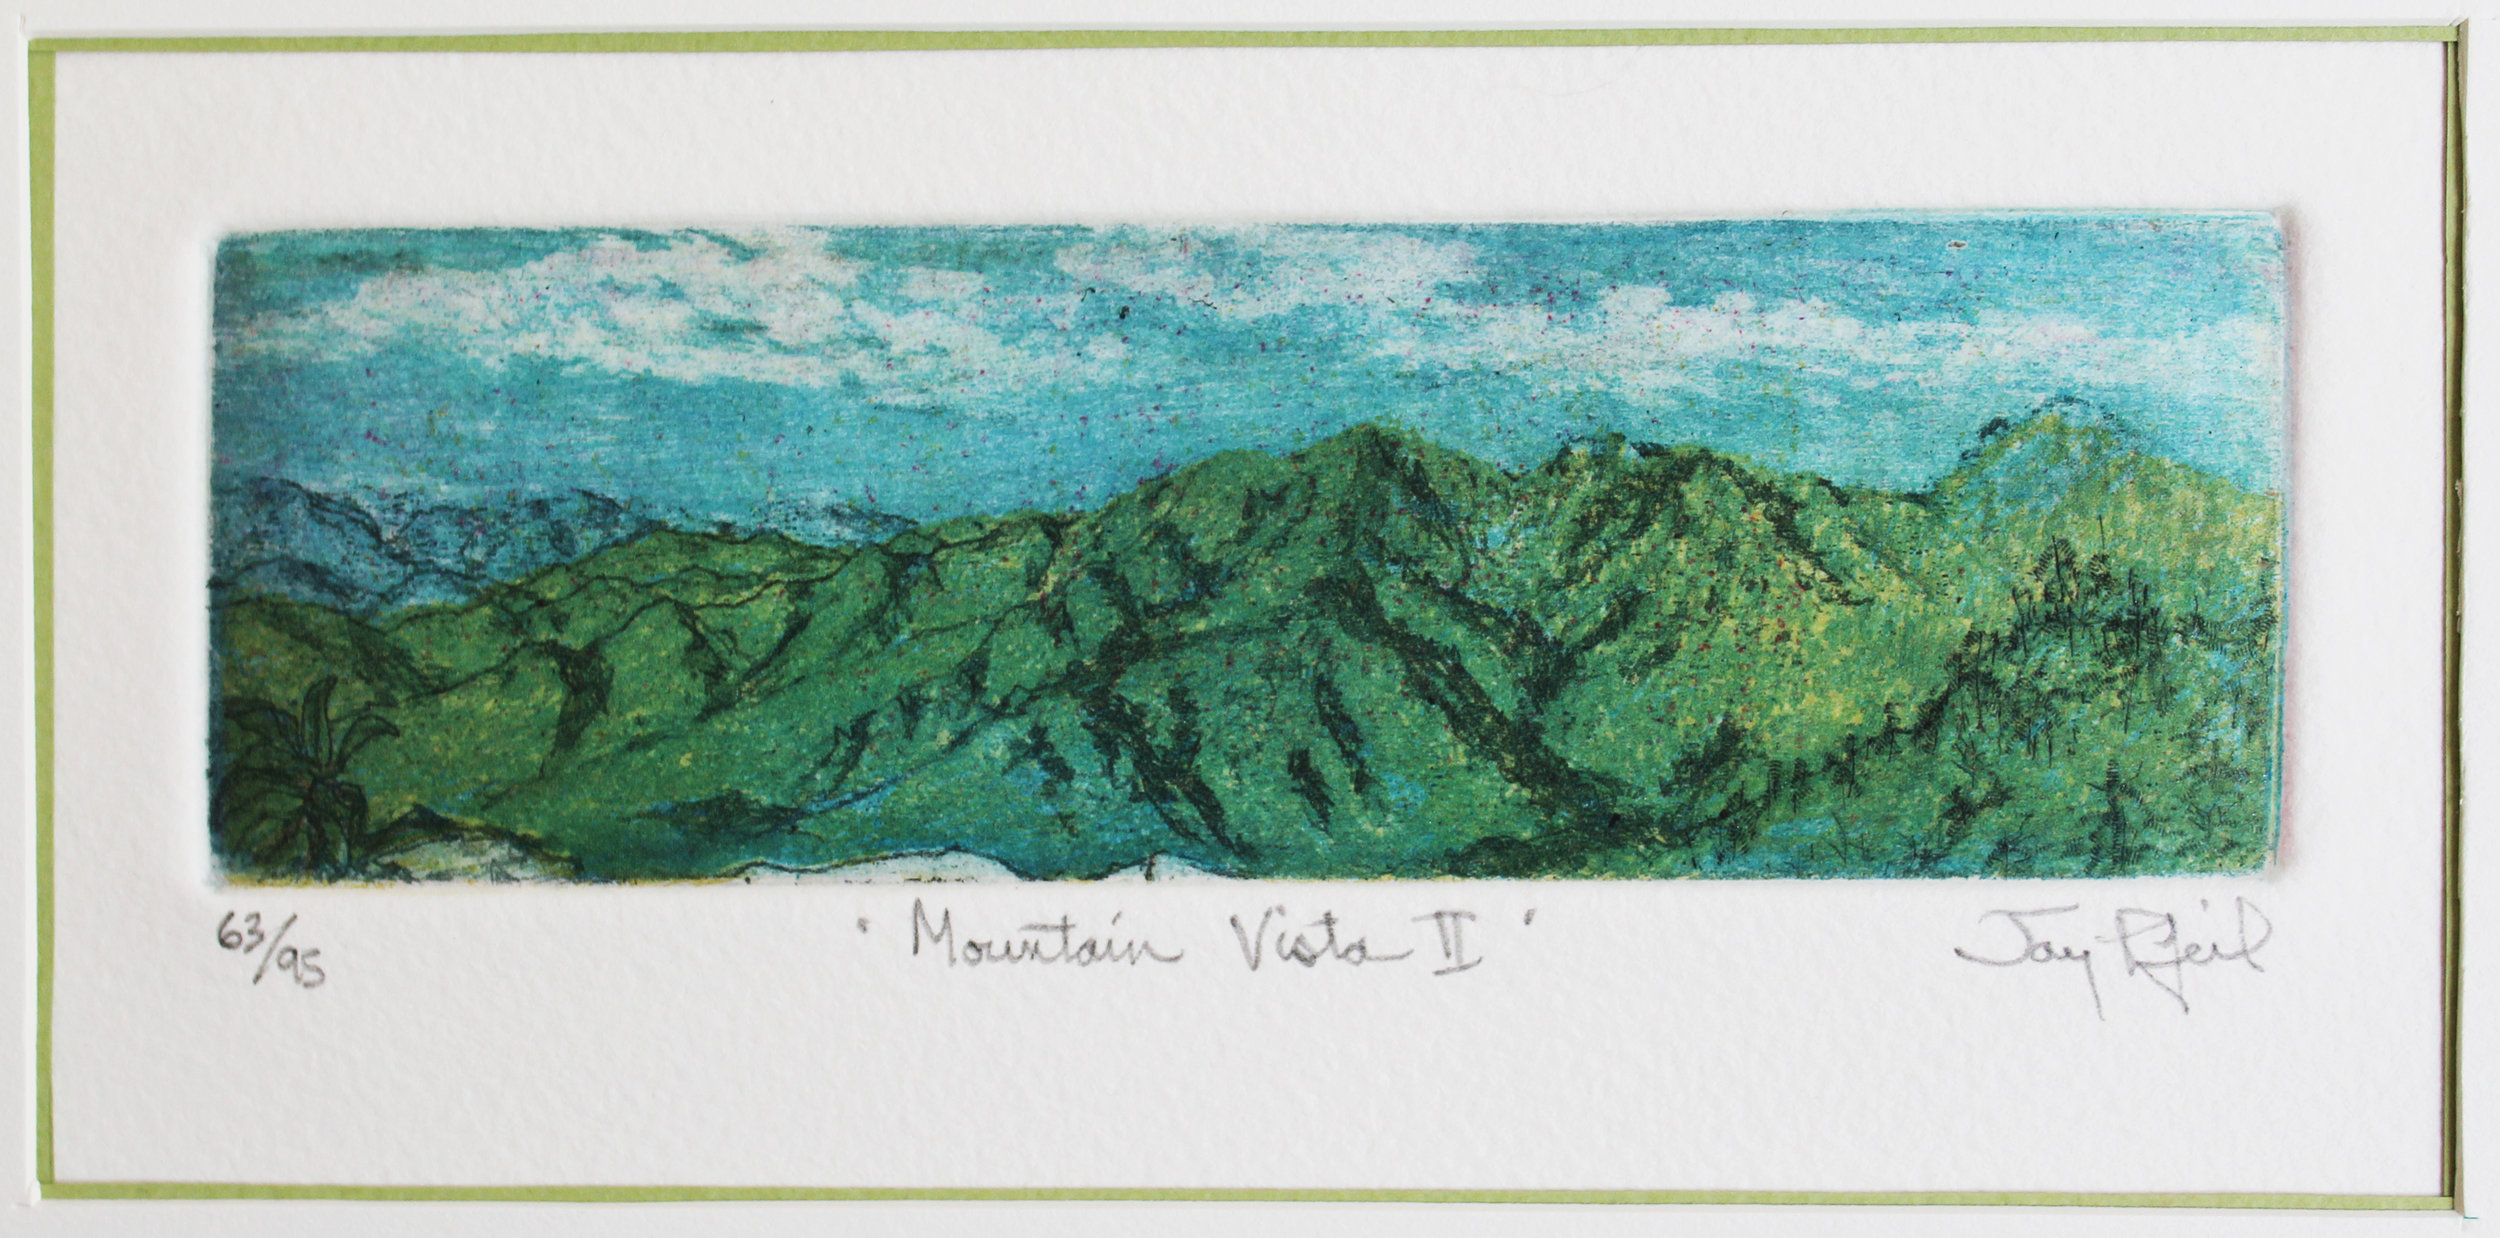 Mountain Vista II